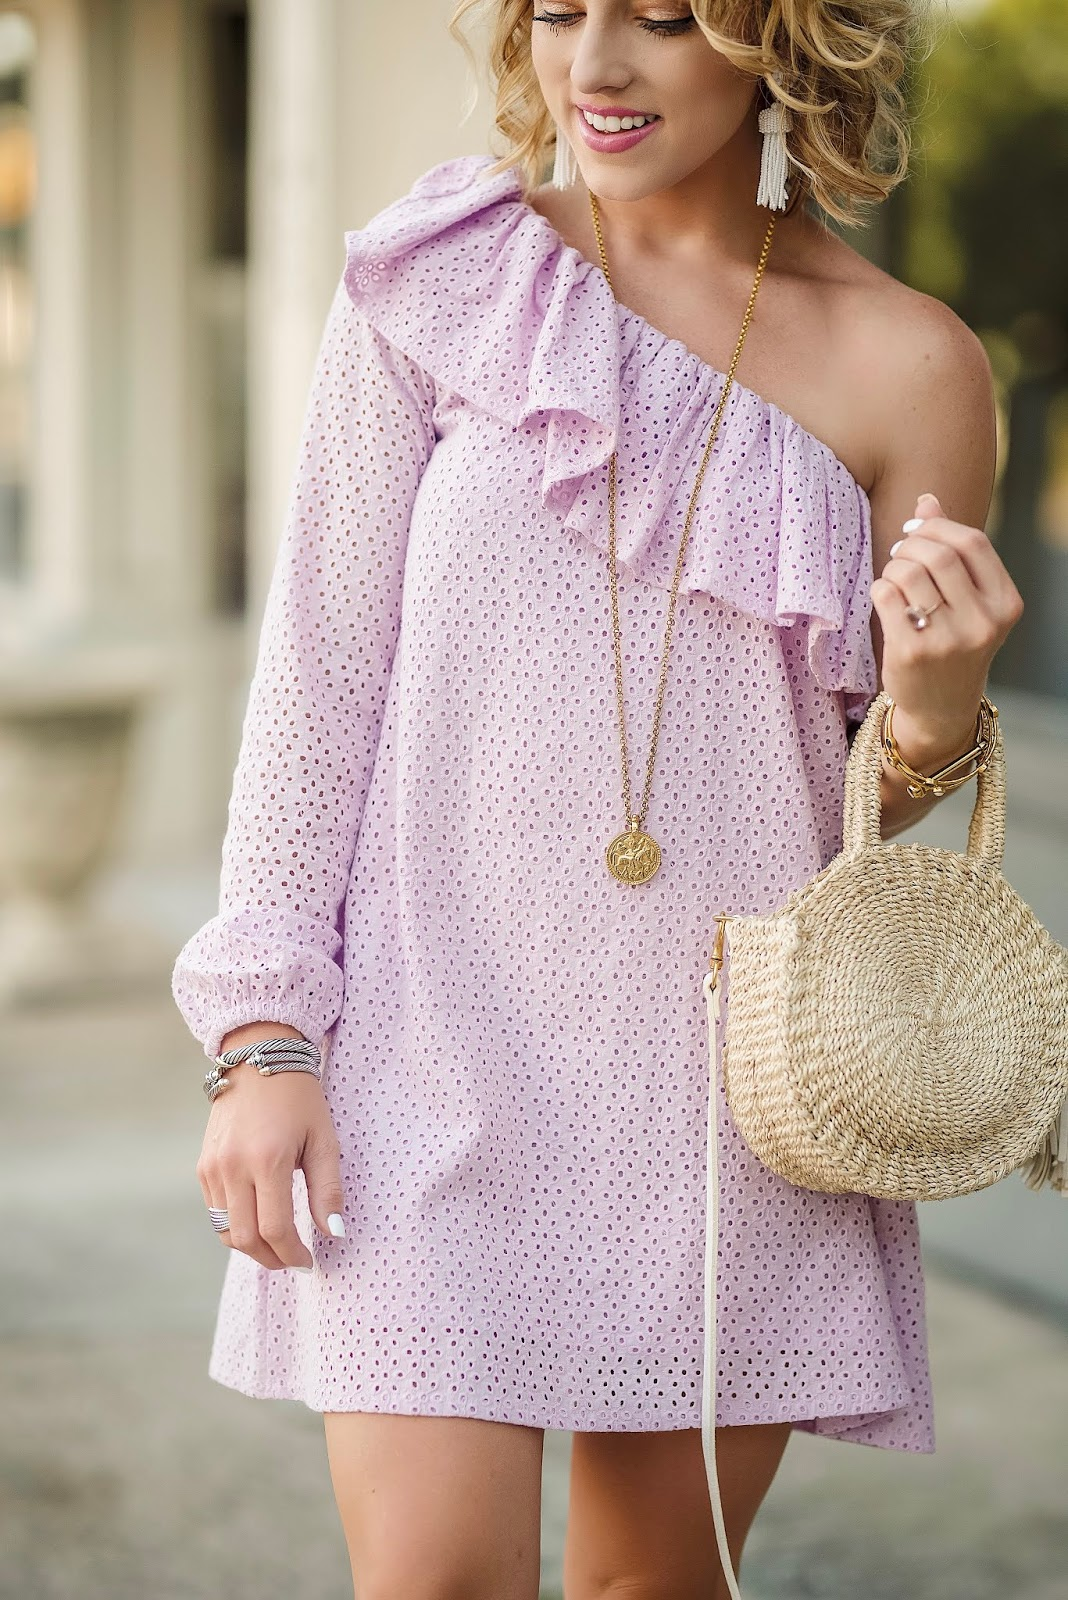 Under $100 Lavender Eyelet One Shoulder Dress - Something Delightful Blog